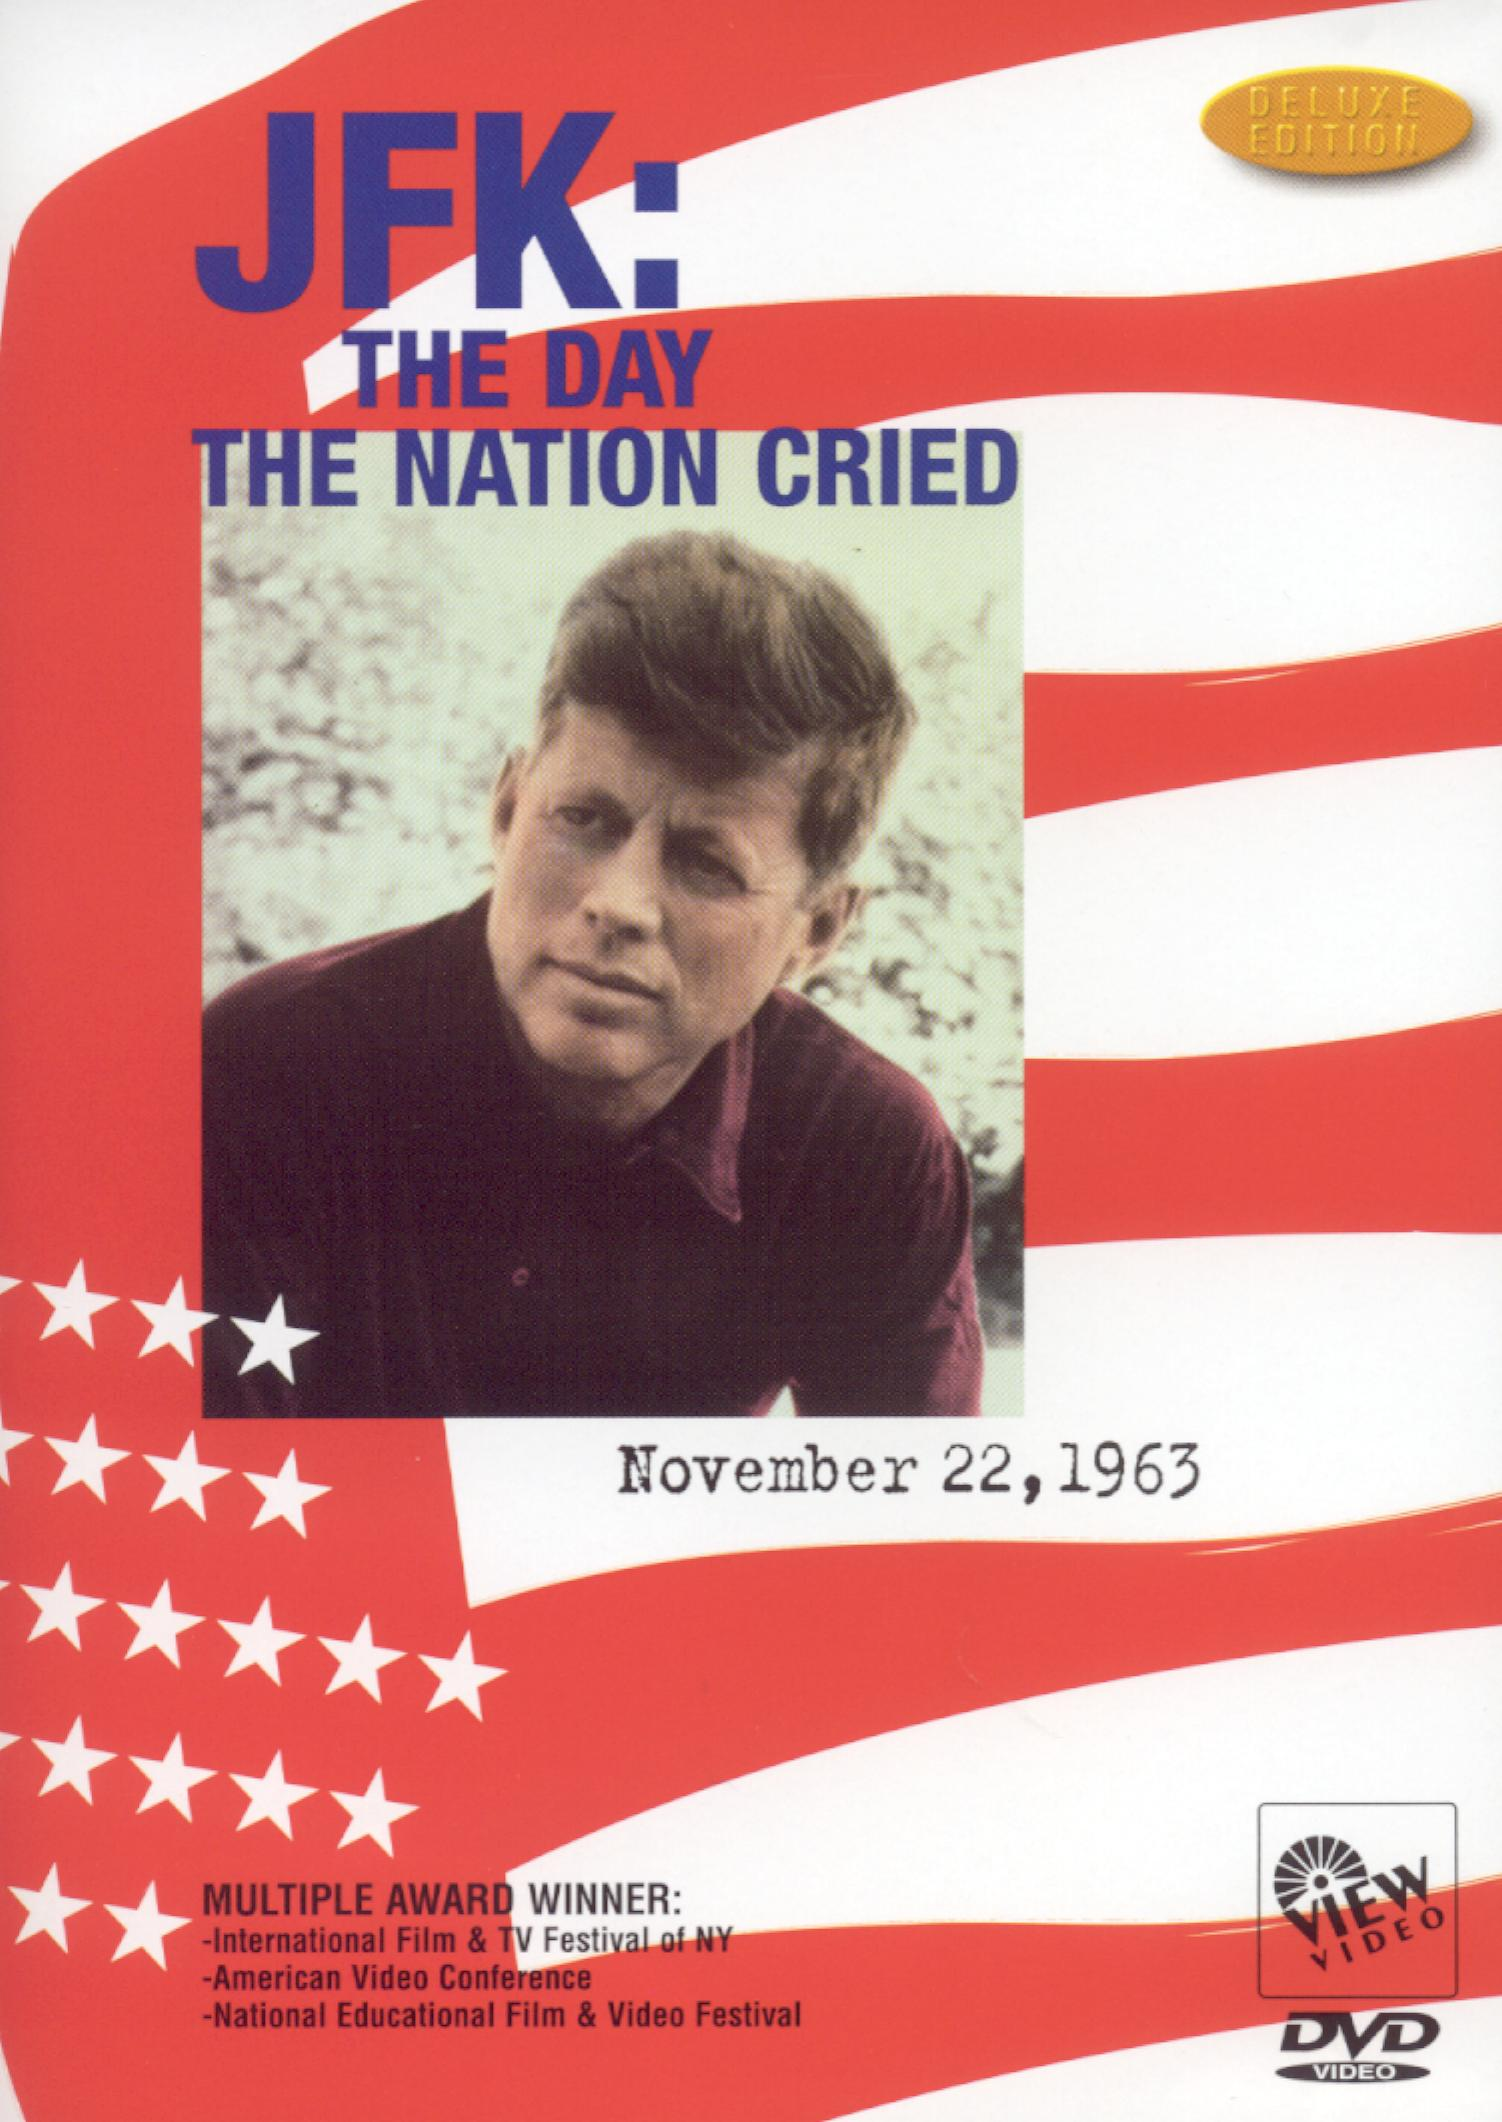 JFK The Day the Nation Cried Details